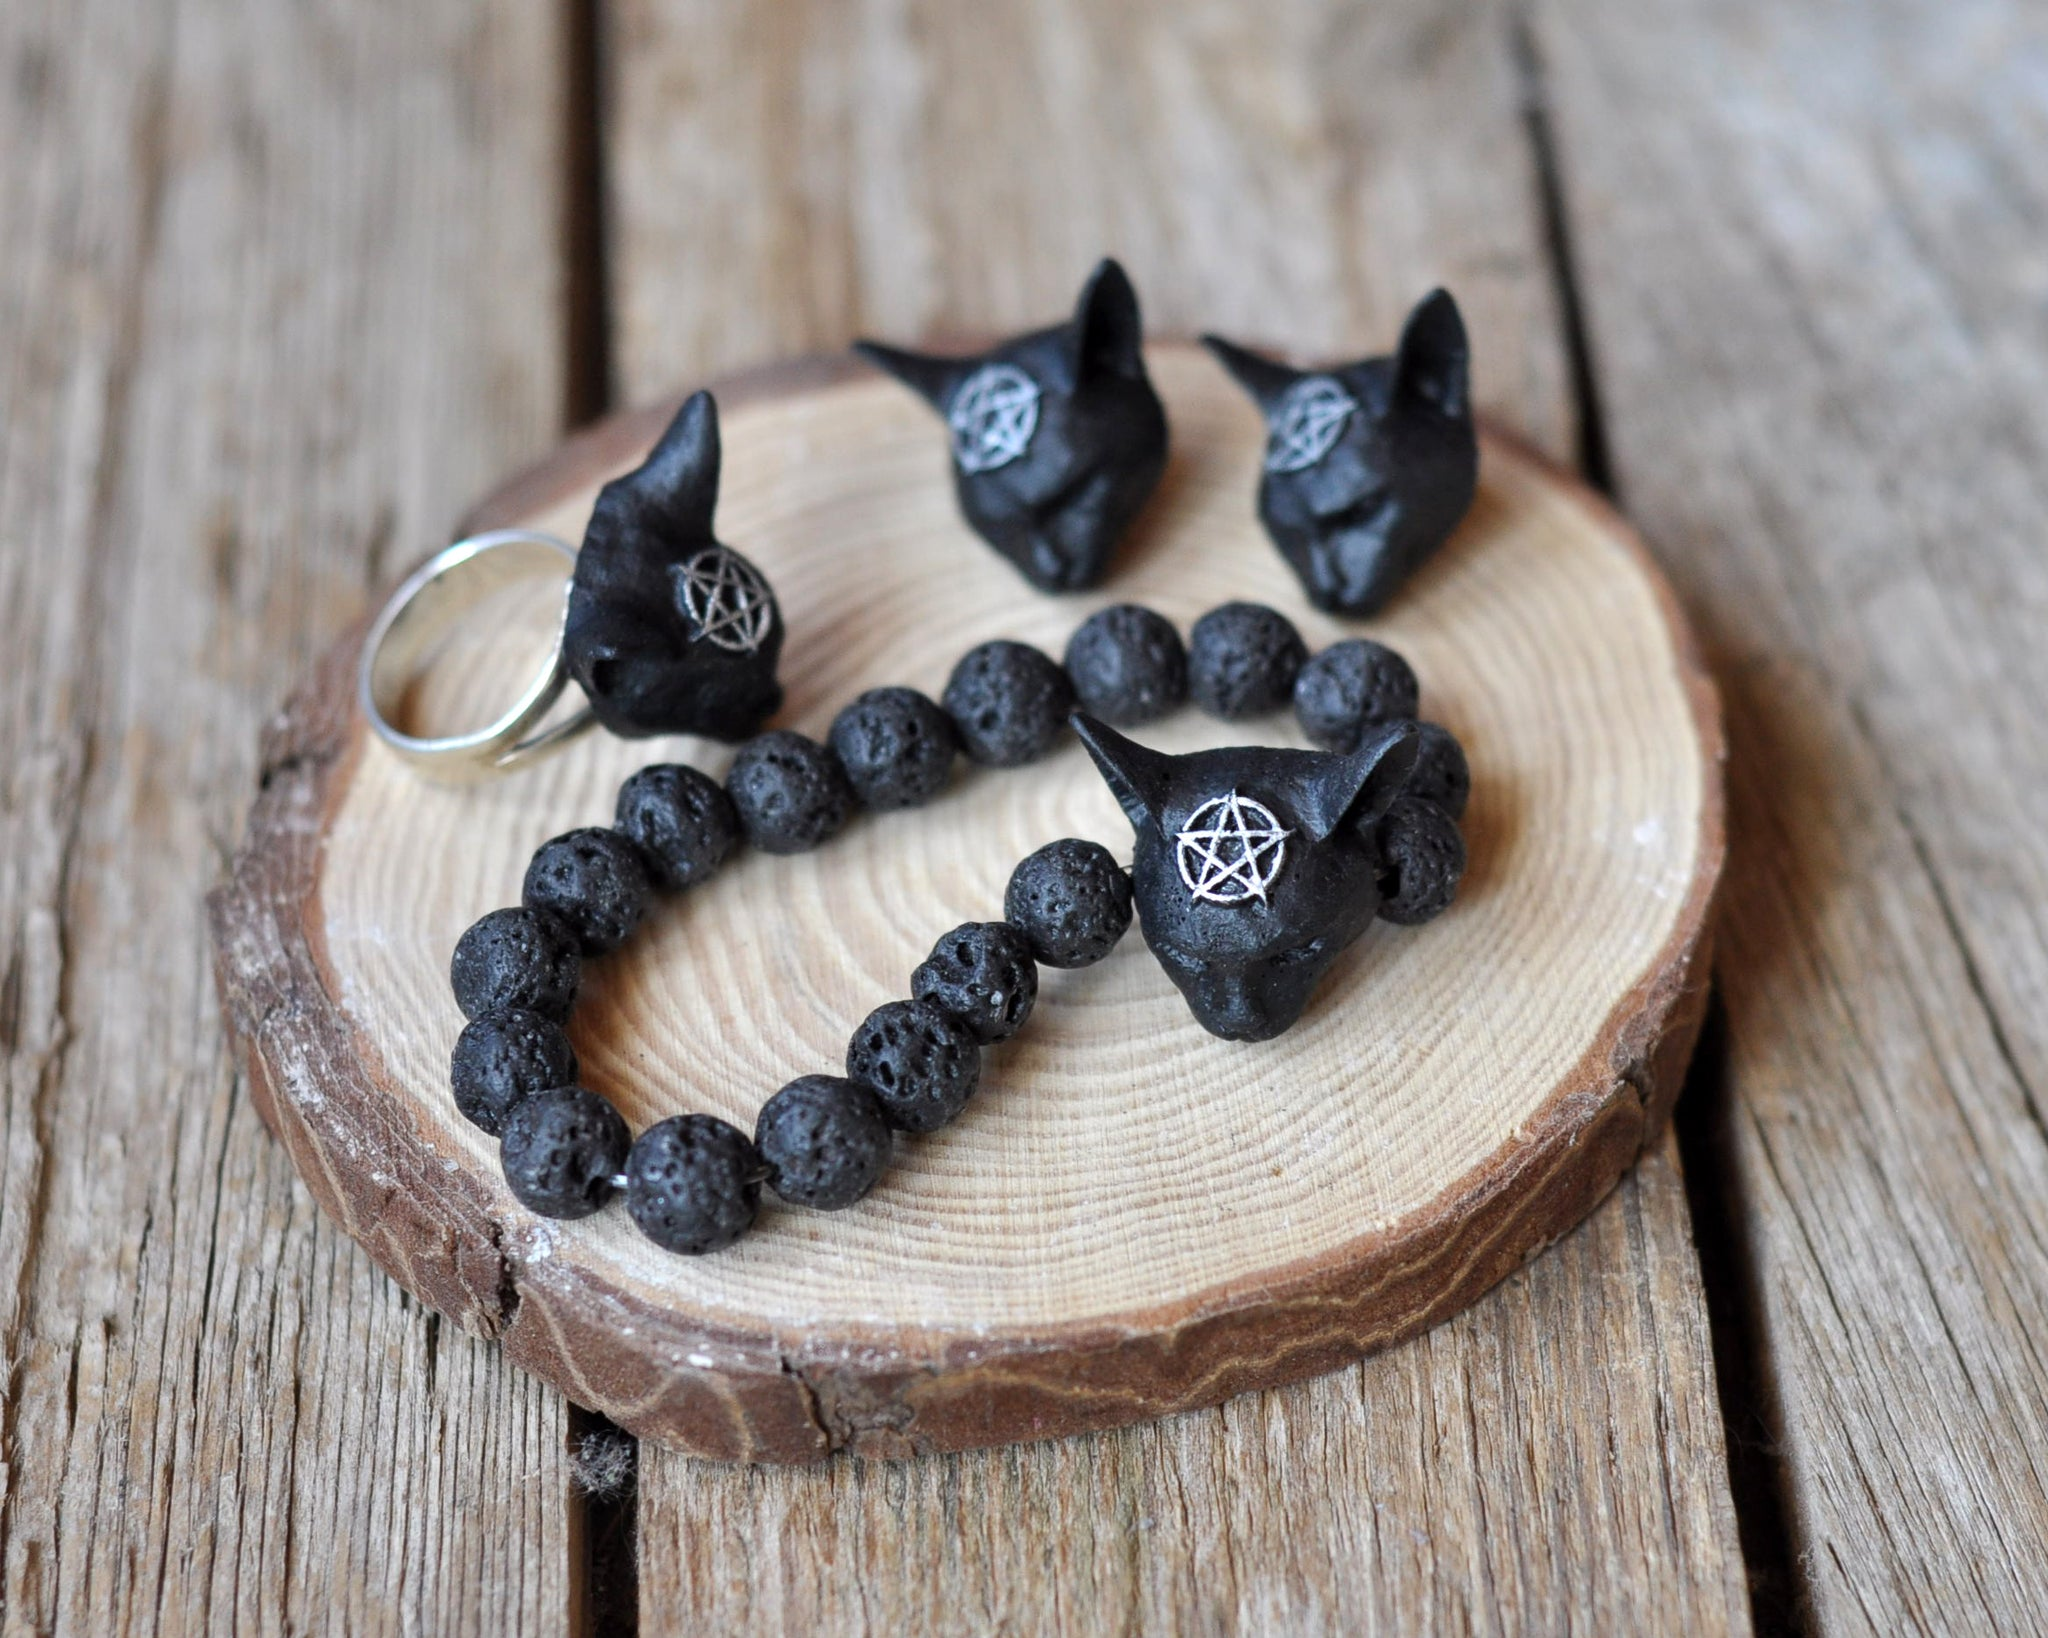 Pentagram Cat Ring, Pentagram Cat Earrings, Cat Pendant, 925 Sterling silver jewelry Sets, Resin jewelry Sets, Gothic Style Jewelry Sets